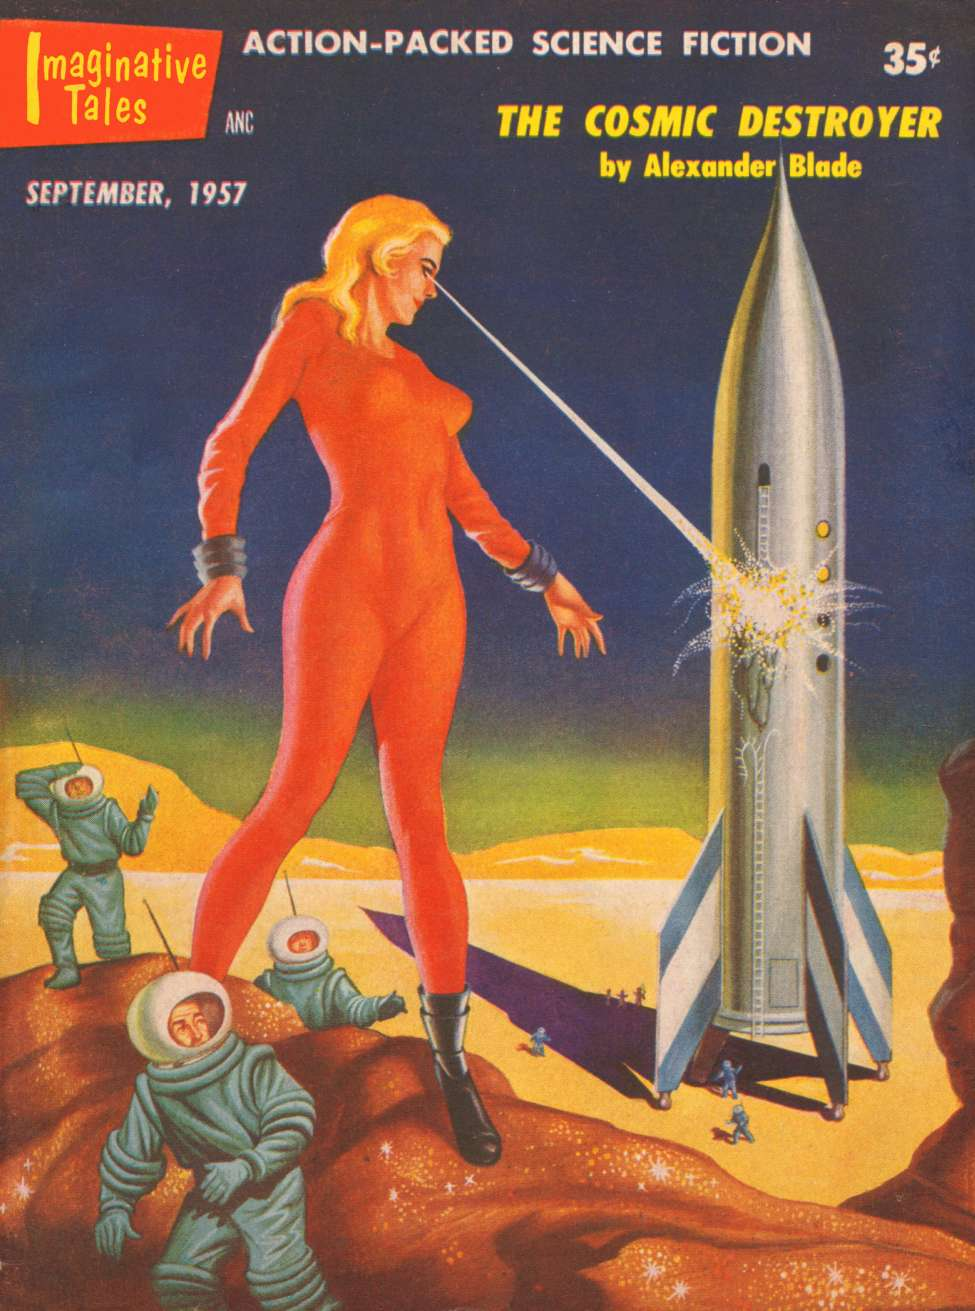 Comic Book Cover For Imaginative Tales v04 05 - The Cosmic Destroyer - Alexander Blade